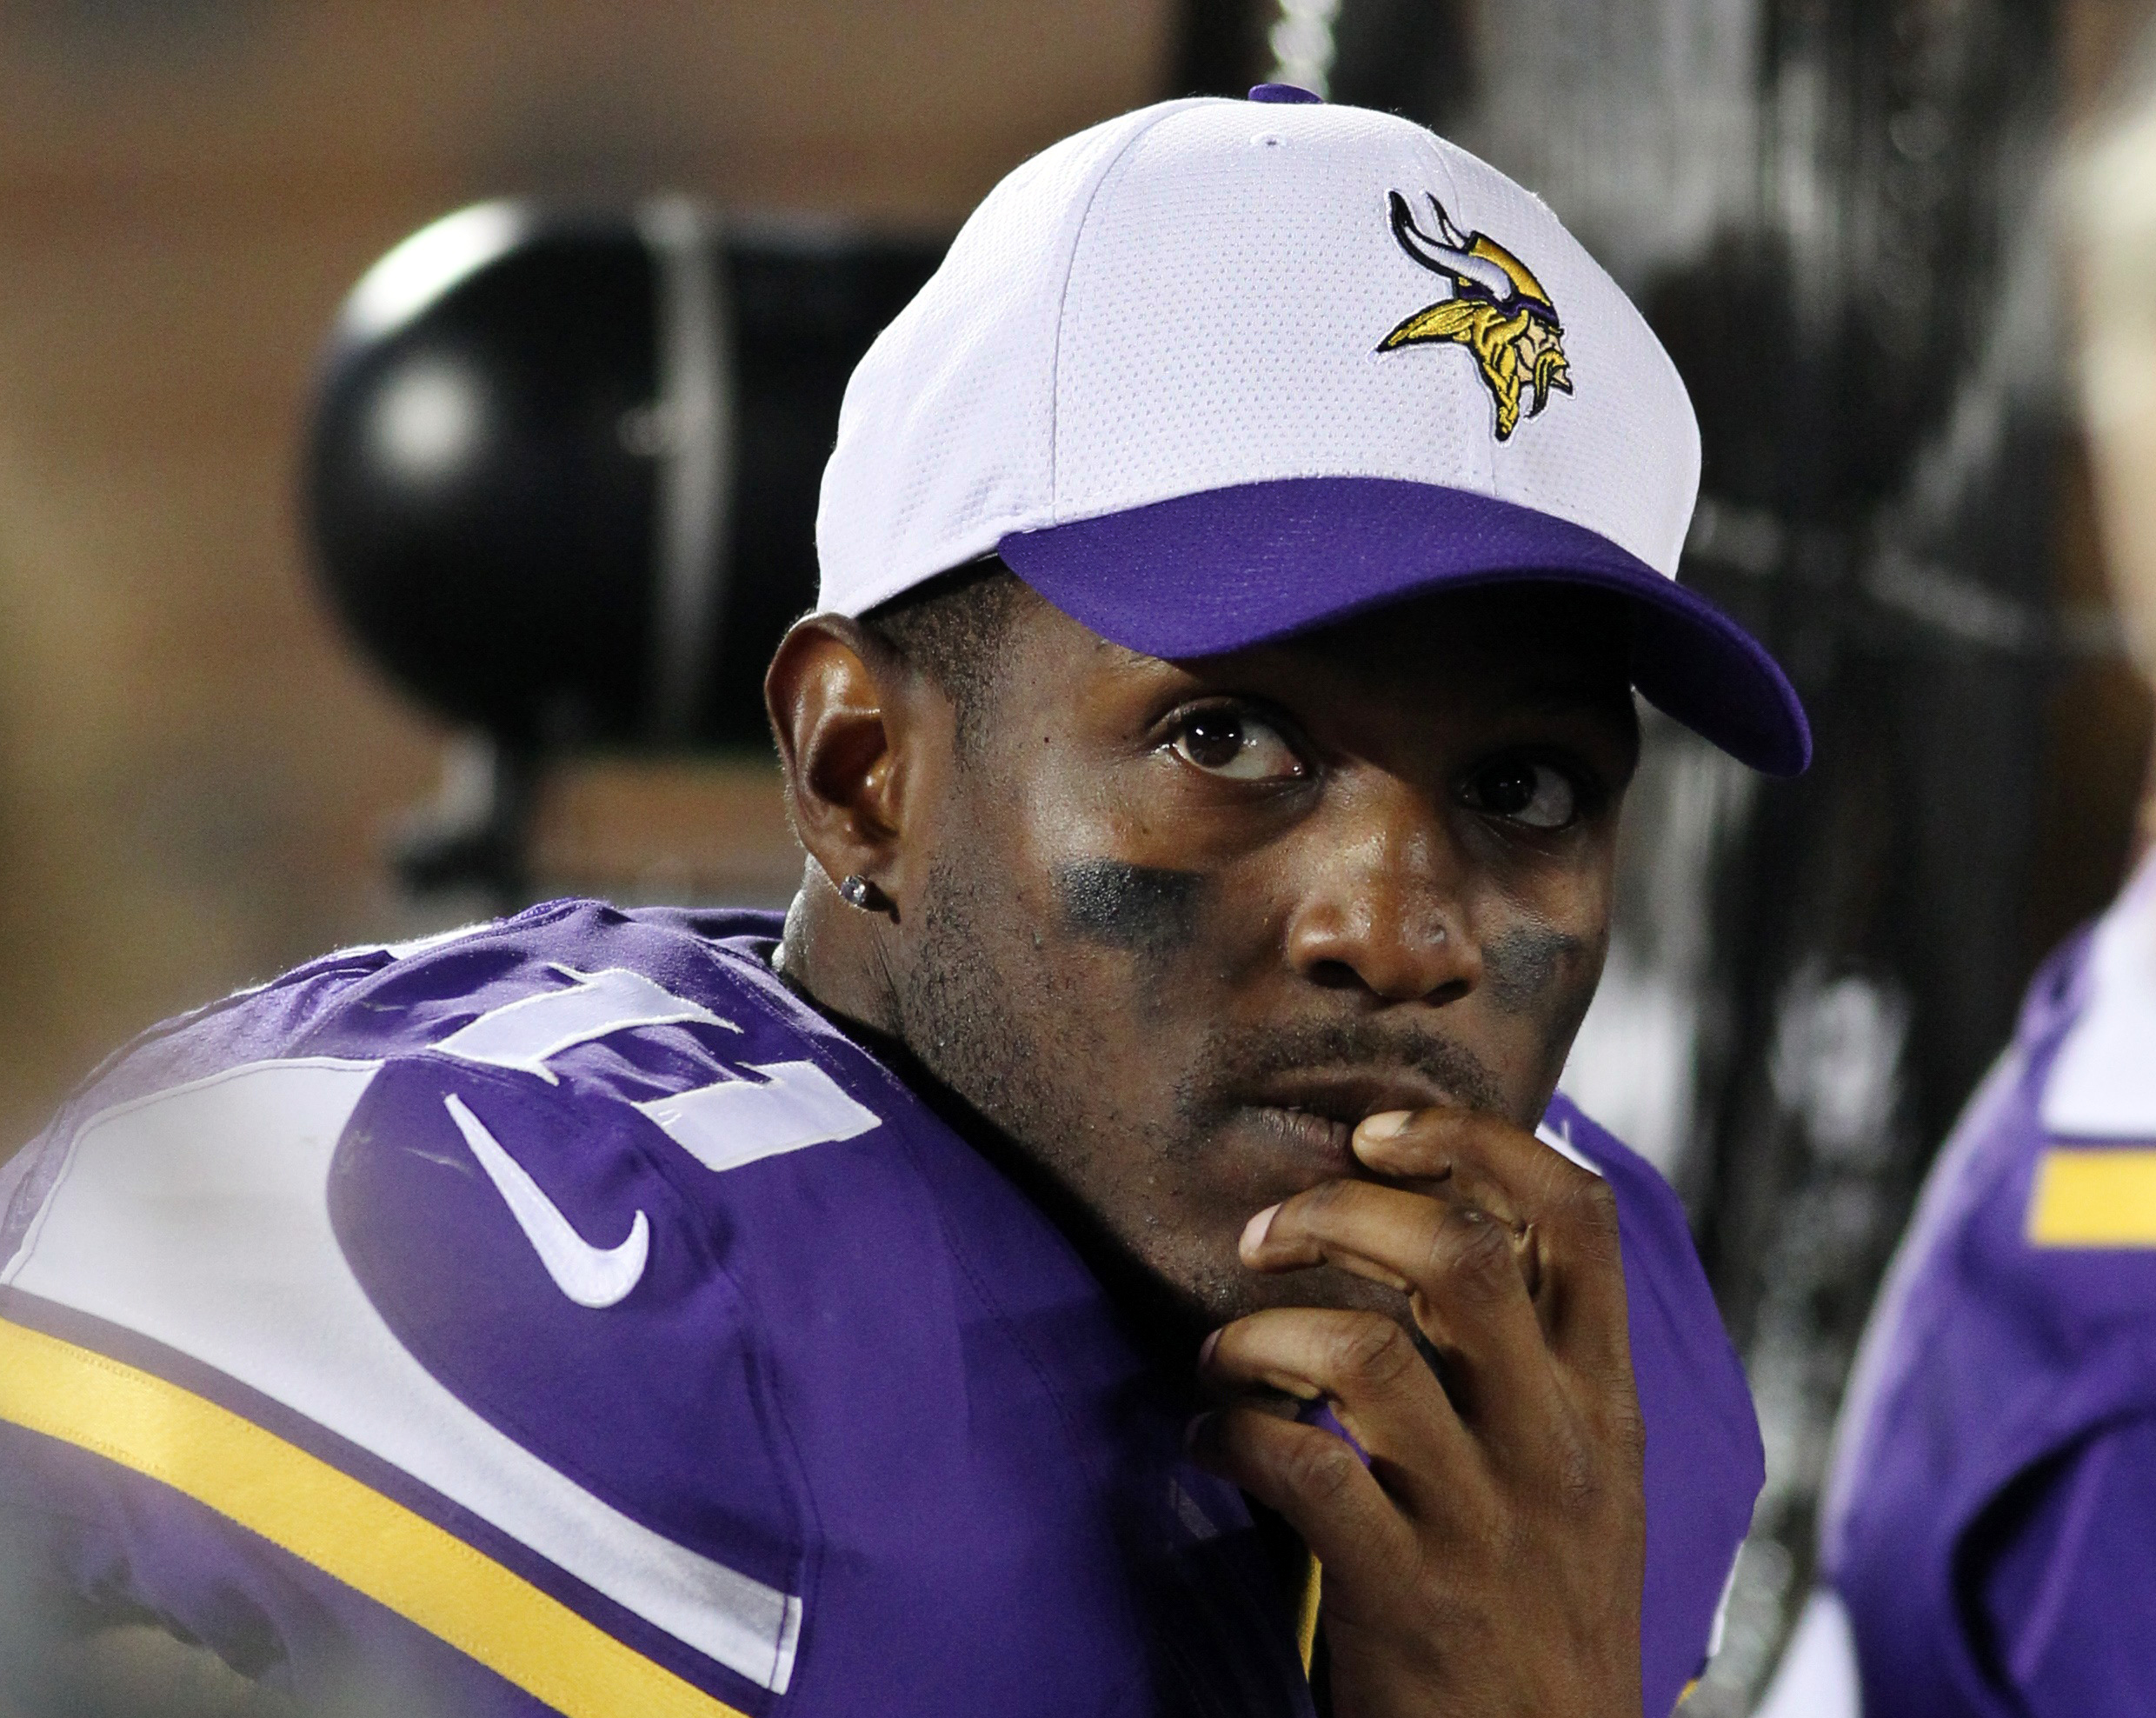 FILE - In this Aug. 22, 2015, file phot , Minnesota Vikings wide receiver Mike Wallace sits on the bench during the second half of a preseason NFL football game against the Oakland Raiders in Minneapolis. The Vikings released Wallace on Tuesday, March 8,